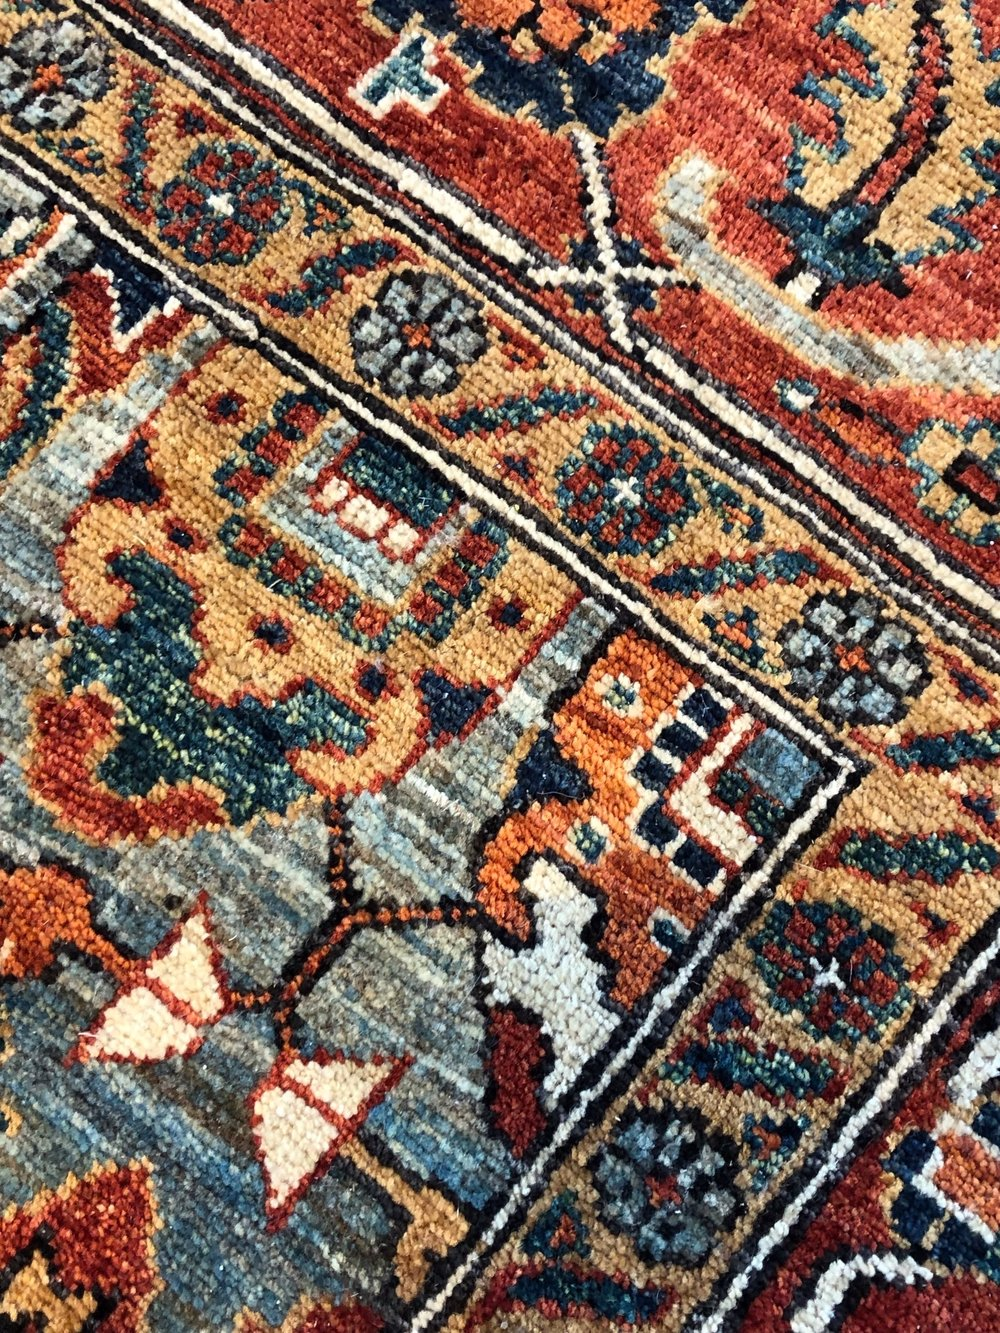 Persian+Rug+at+Westside+Market+1